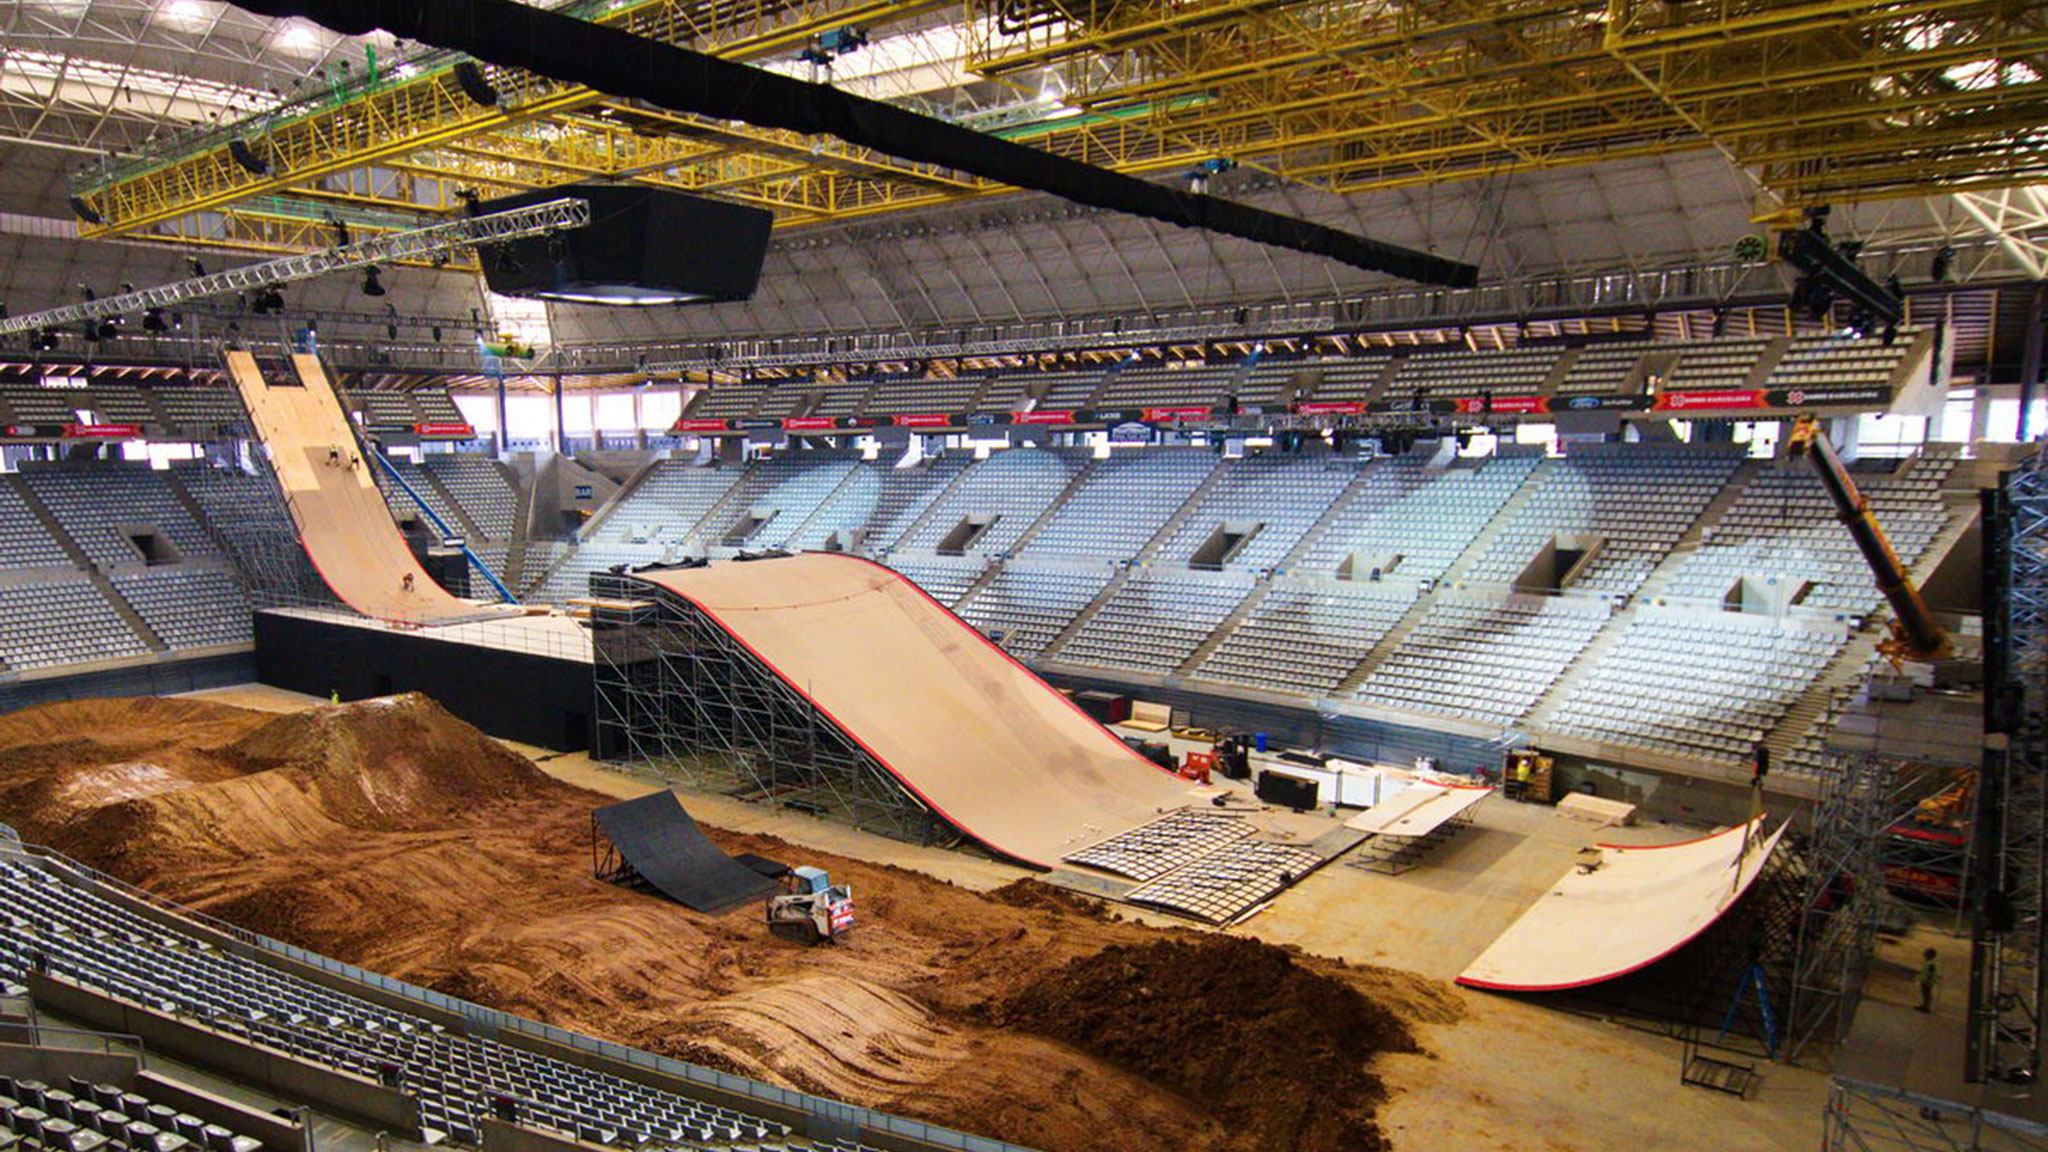 Indoor Big Air